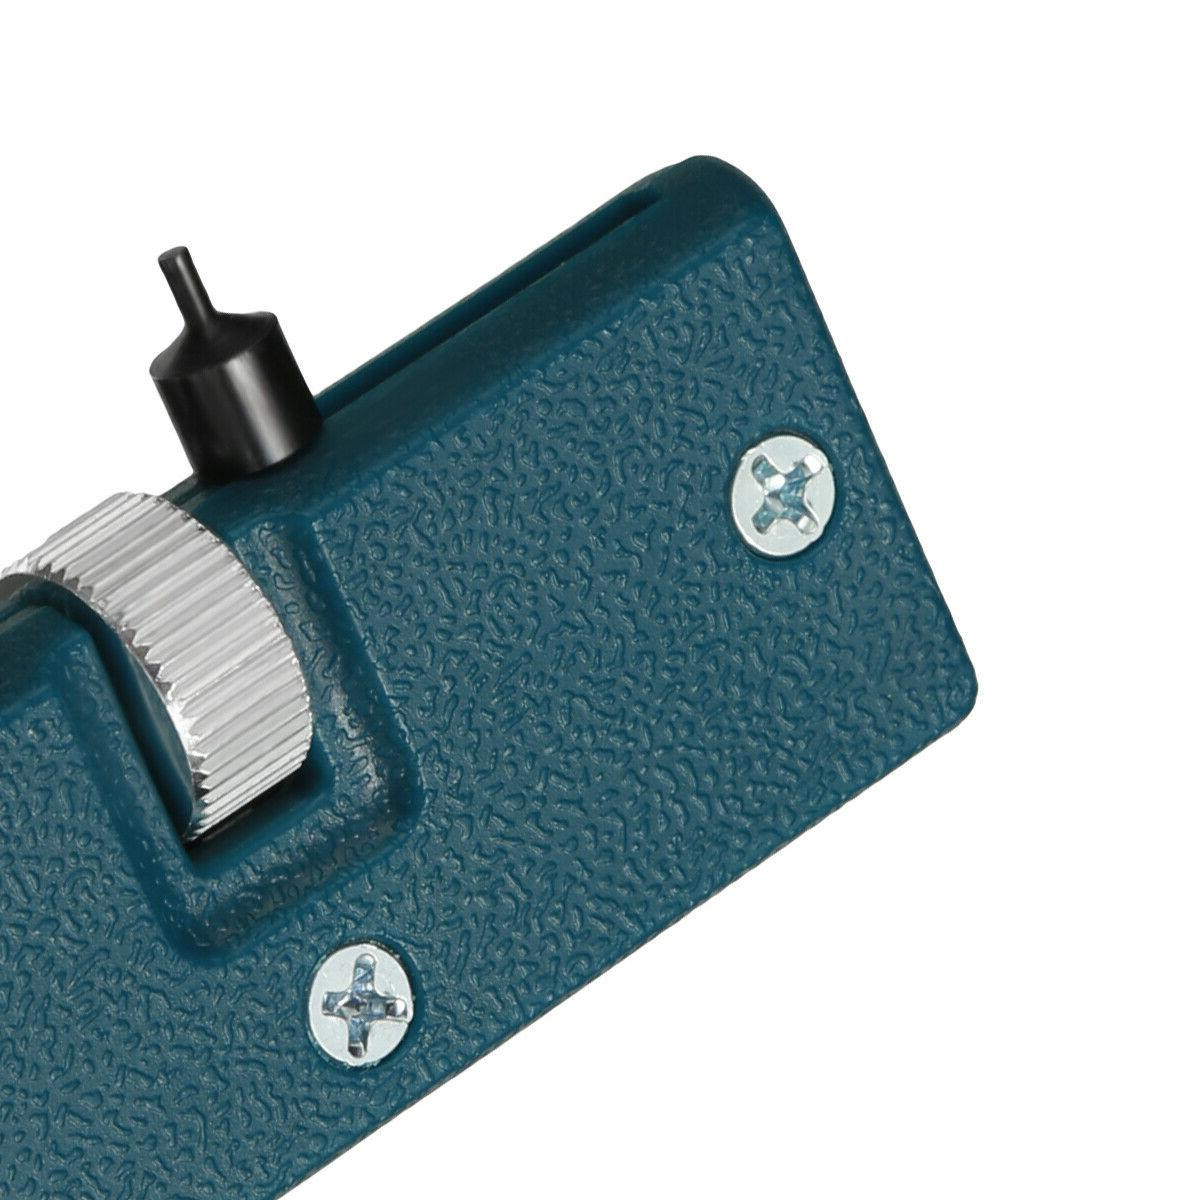 Adjustable Rectangle Case Wrench